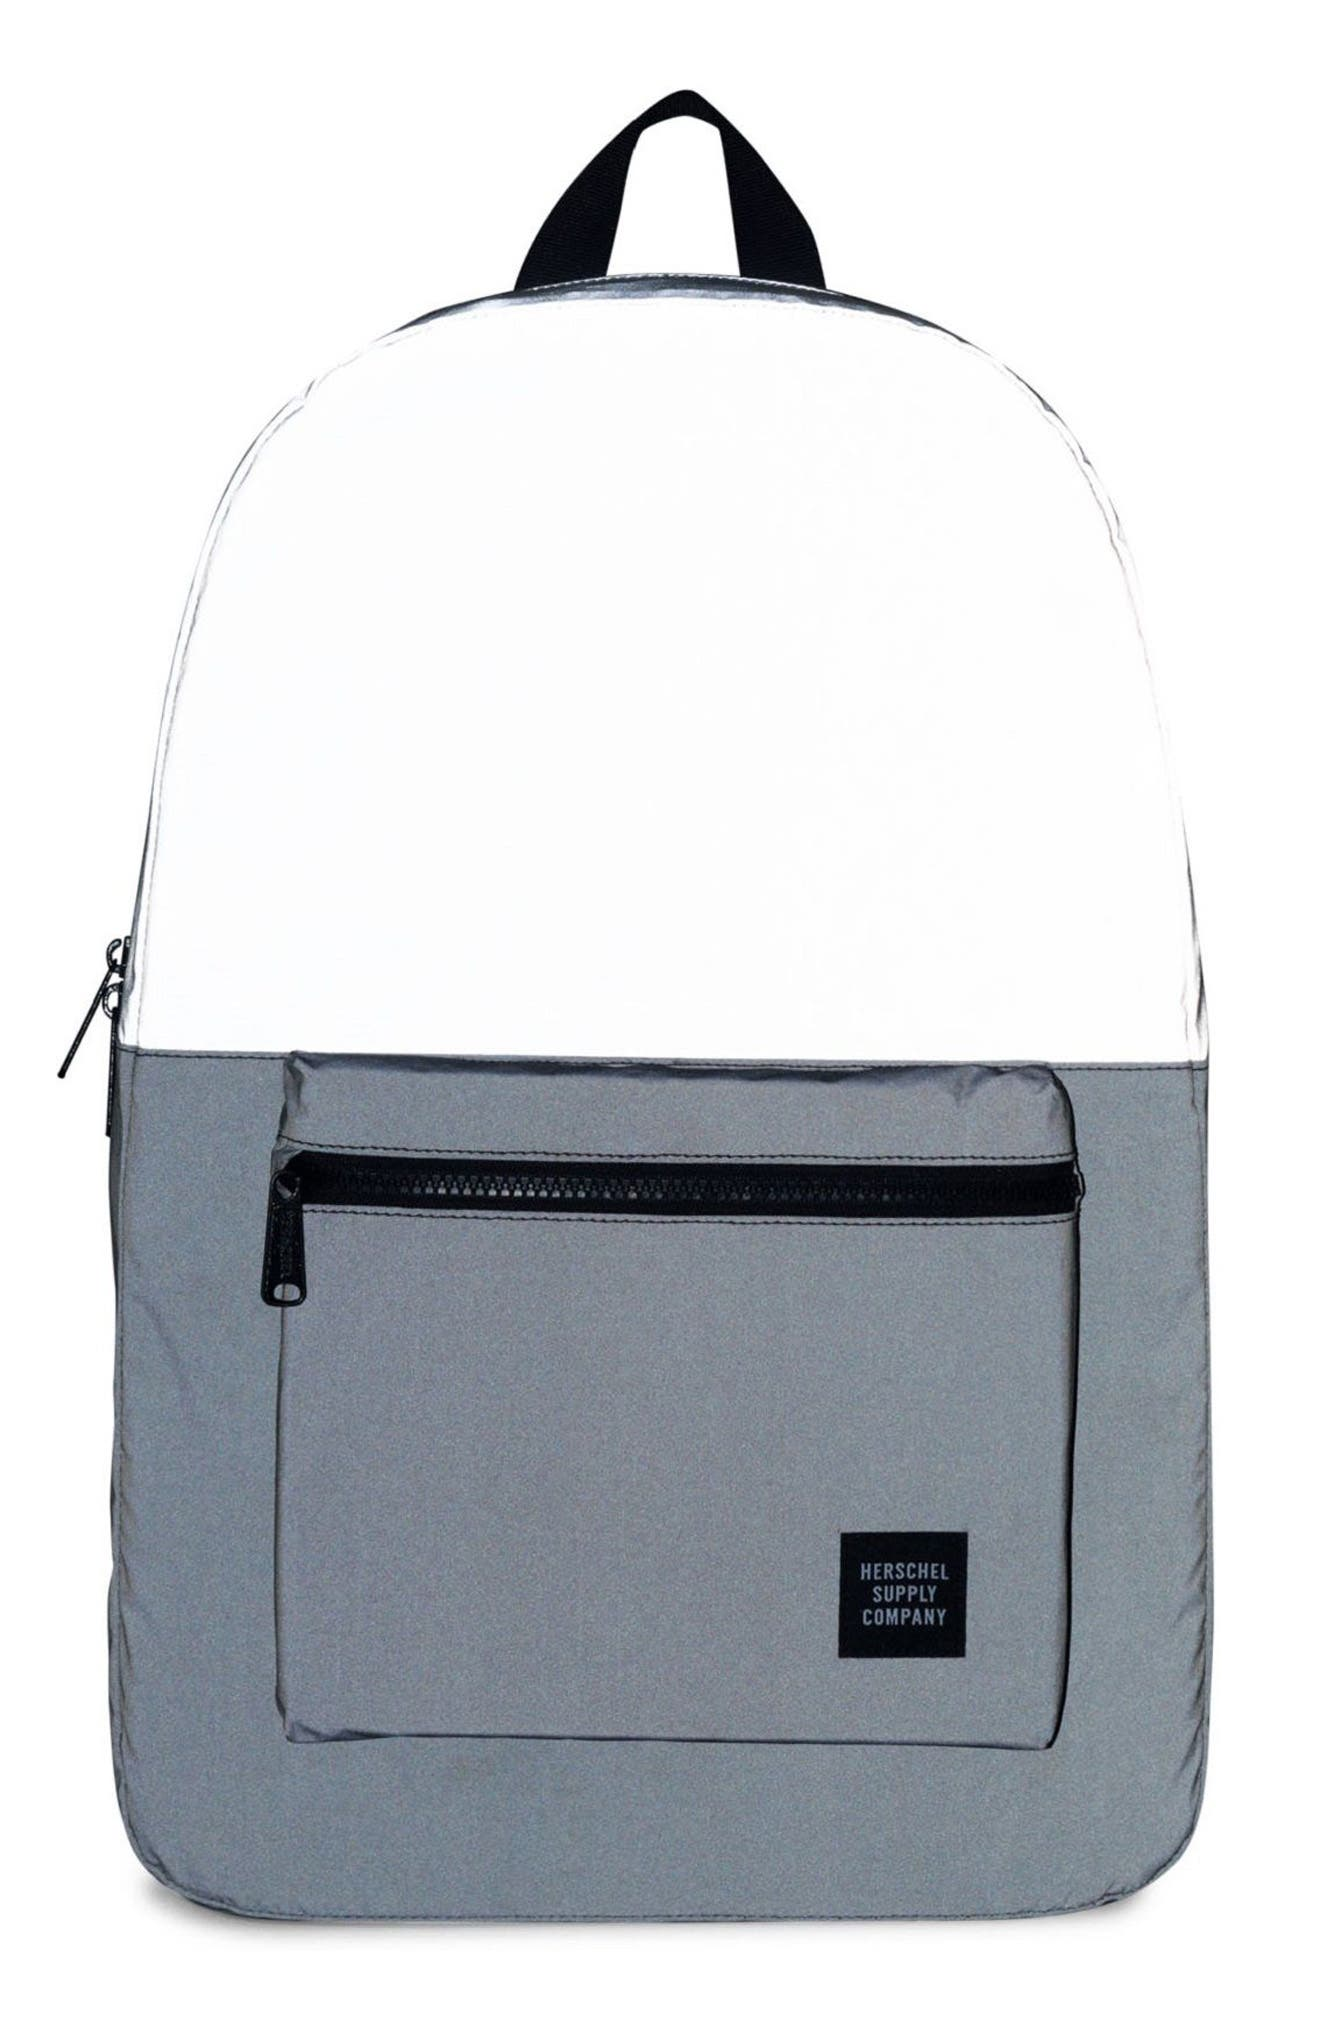 Heritage Reflective Backpack,                             Alternate thumbnail 4, color,                             050